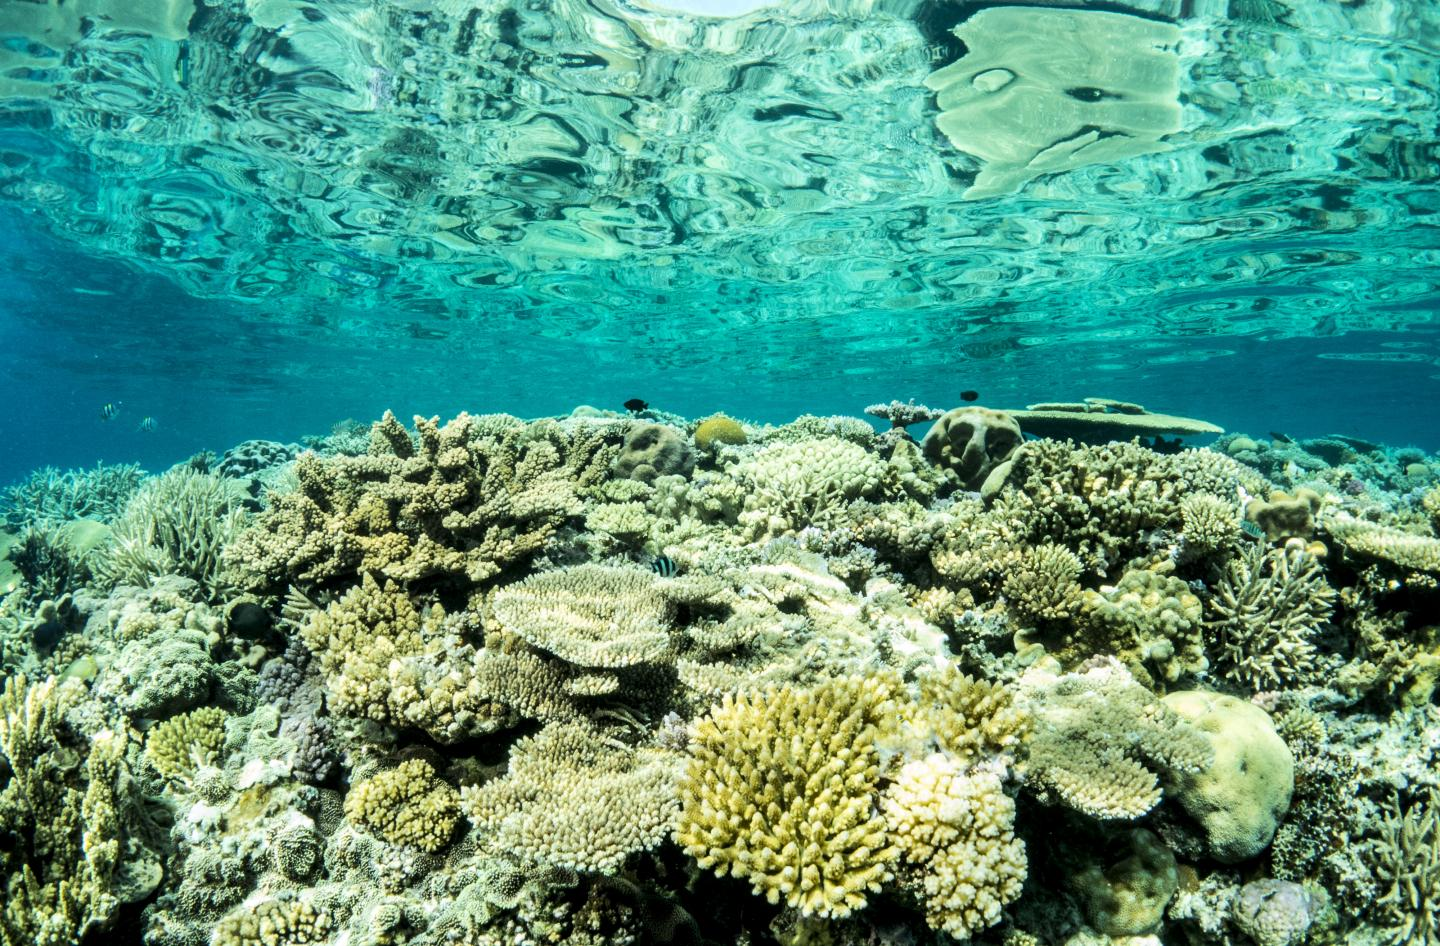 Resilience of Great Barrier Reef offers Opportunities for Regeneration